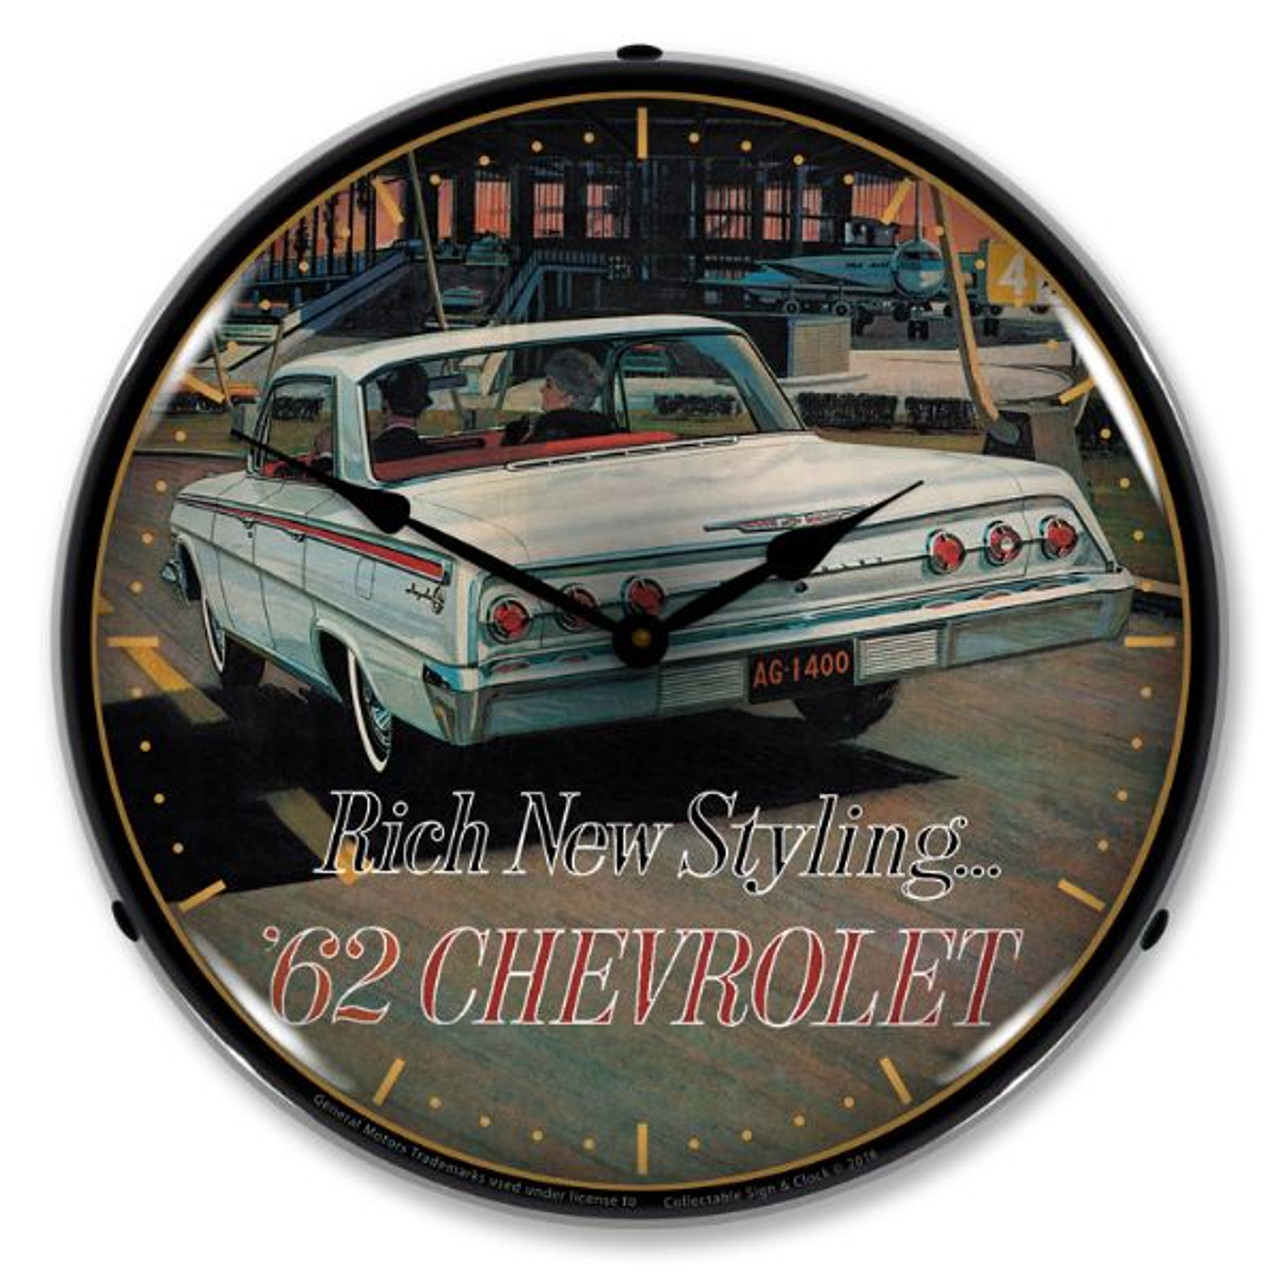 1962 Chevrolet Impala Lighted Wall Clock 14 x 14 Inches